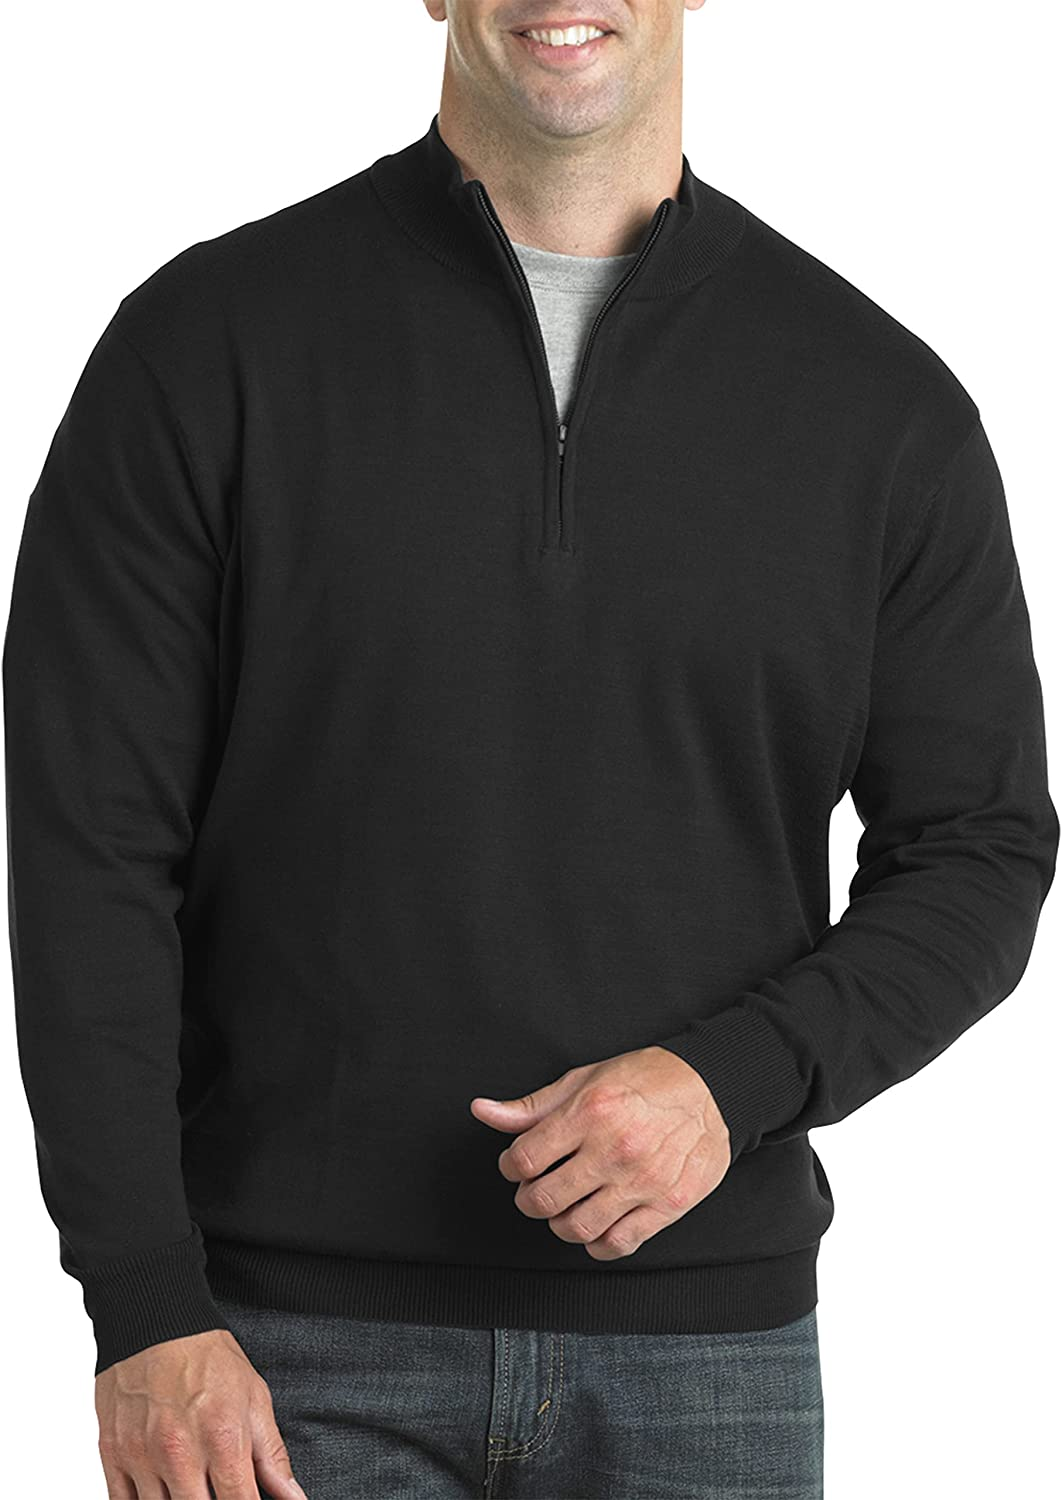 Harbor Bay by DXL Big and Tall Quarter-Zip Pullover Sweater